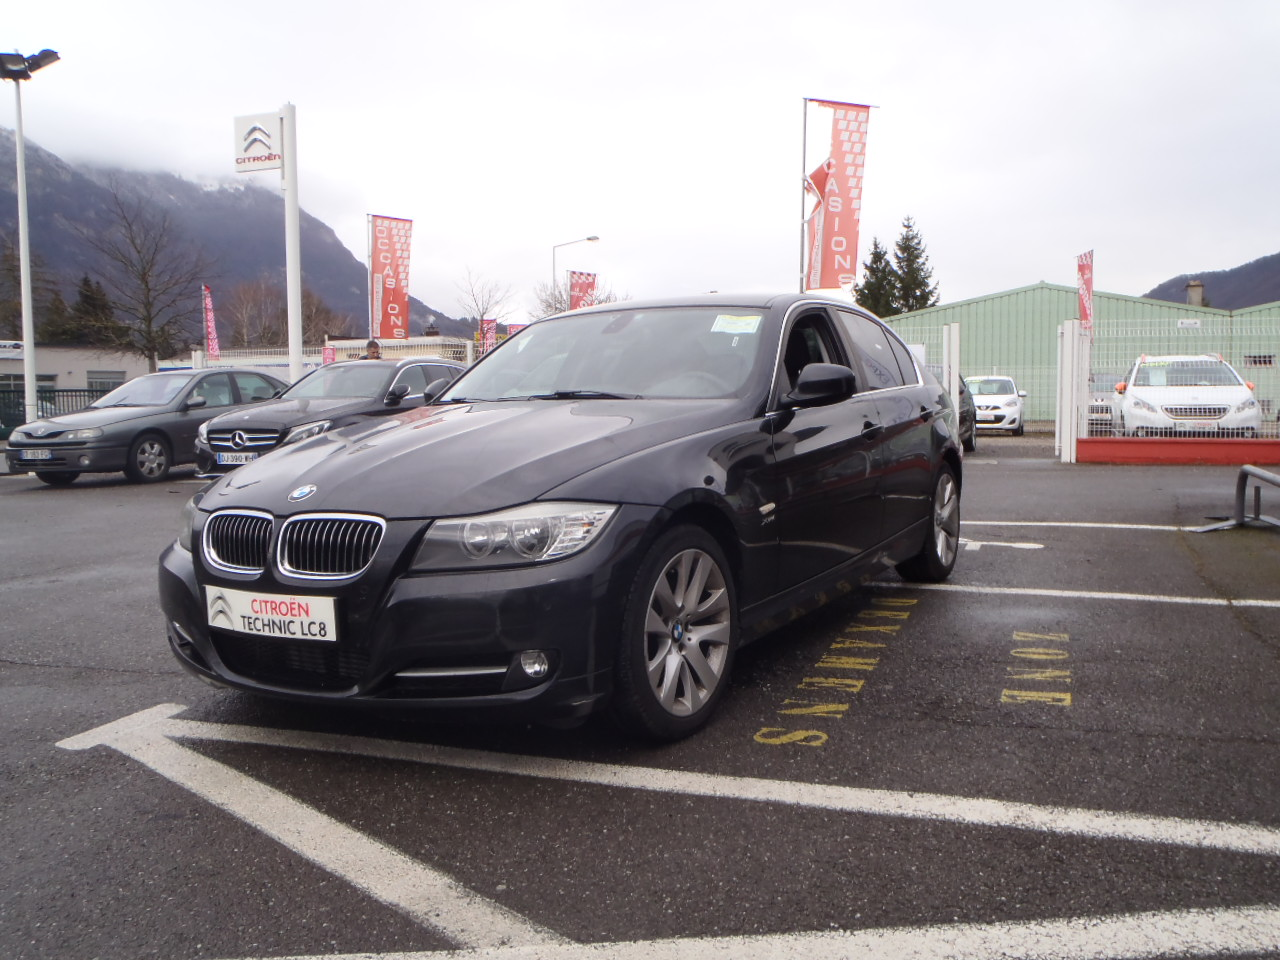 voiture bmw s rie 3 320d xdrive 184ch edition connecteddrive occasion diesel 2011 61100 km. Black Bedroom Furniture Sets. Home Design Ideas